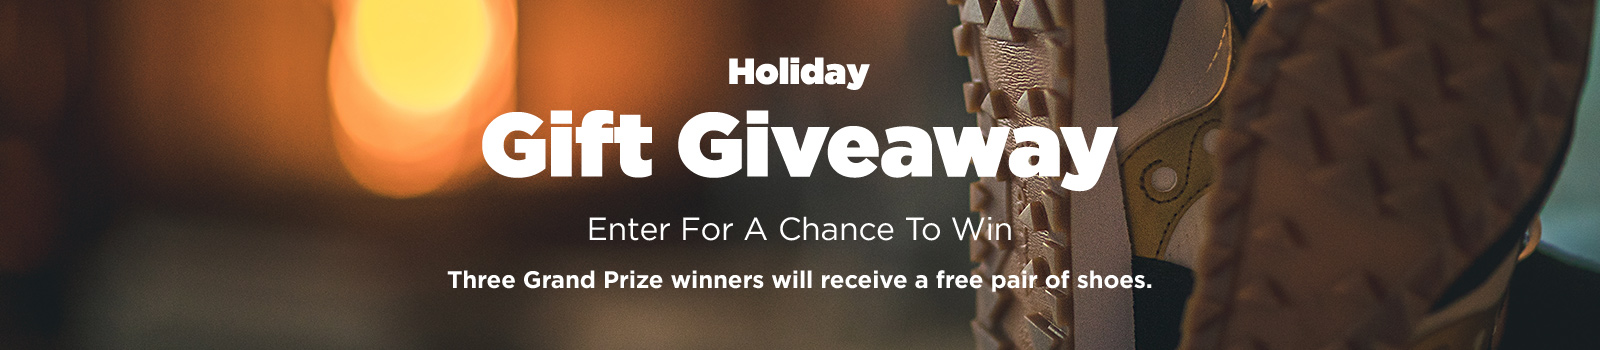 Holiday Gift Giveaway. Enter for a chance to win. Three grand prize winners will receive a free pair of shoes.